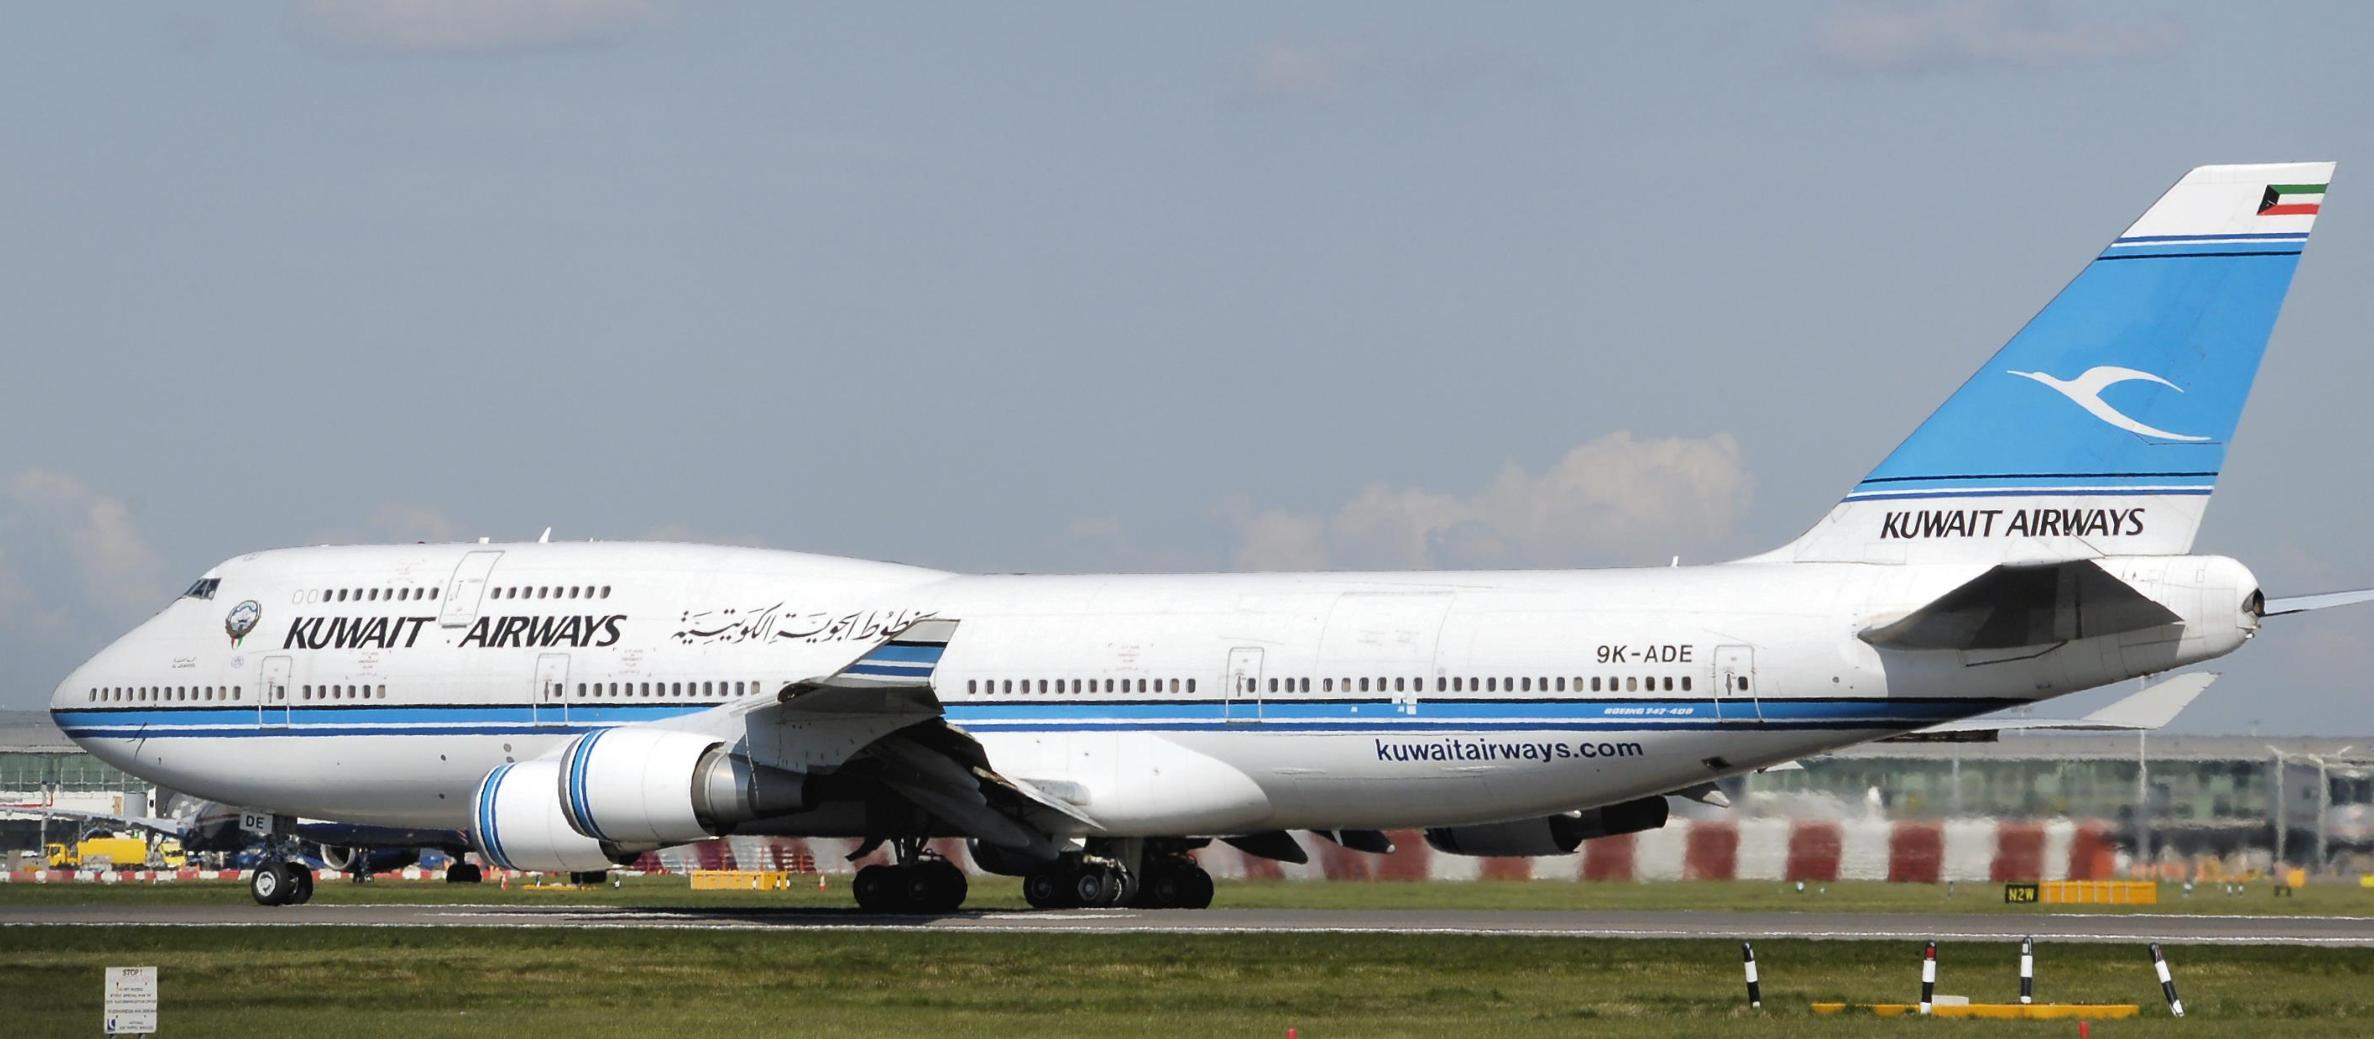 Kuwait Airways scraps New York-London flights rather than allow Israelis